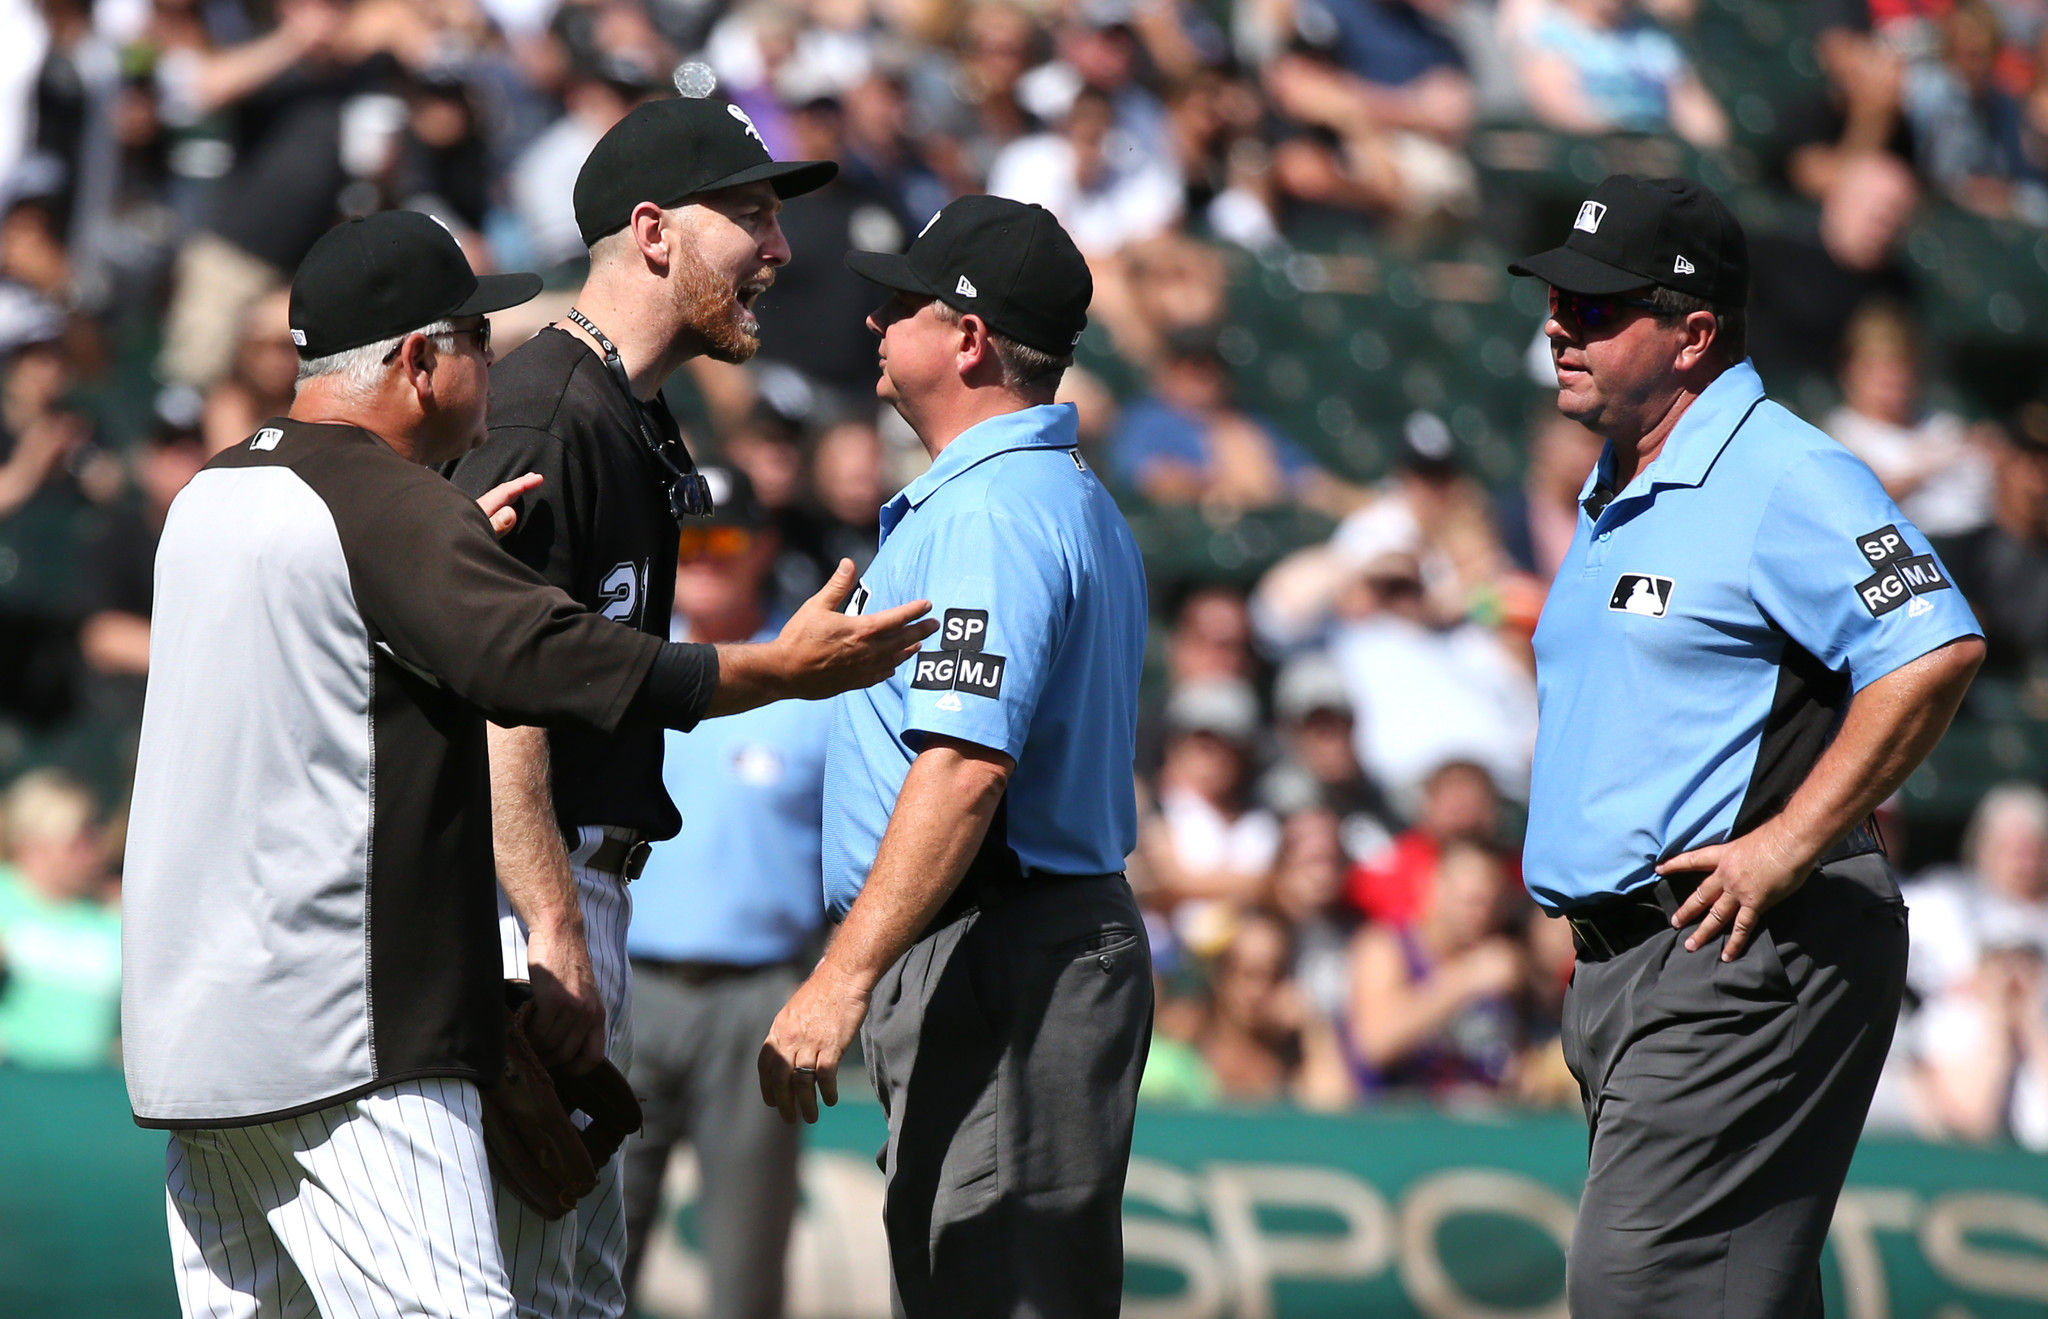 James Shields' start lasts 3 innings as White Sox lose 10-2 to Athletics